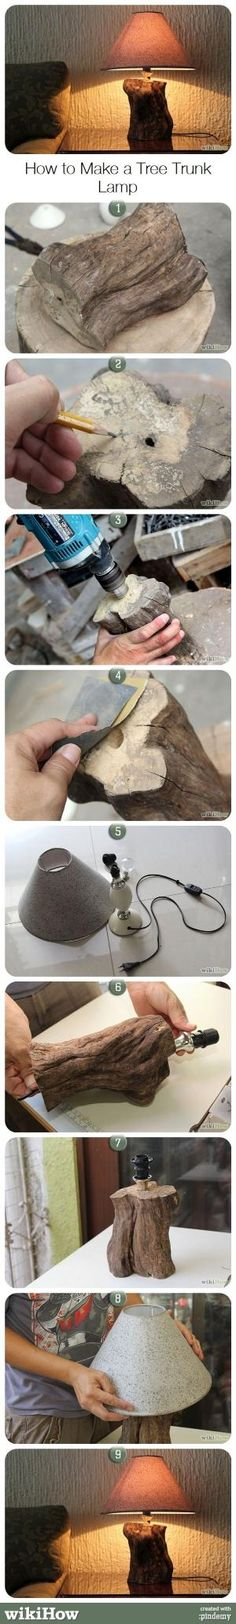 How to Make a Tree Trunk Lamp by oldrose